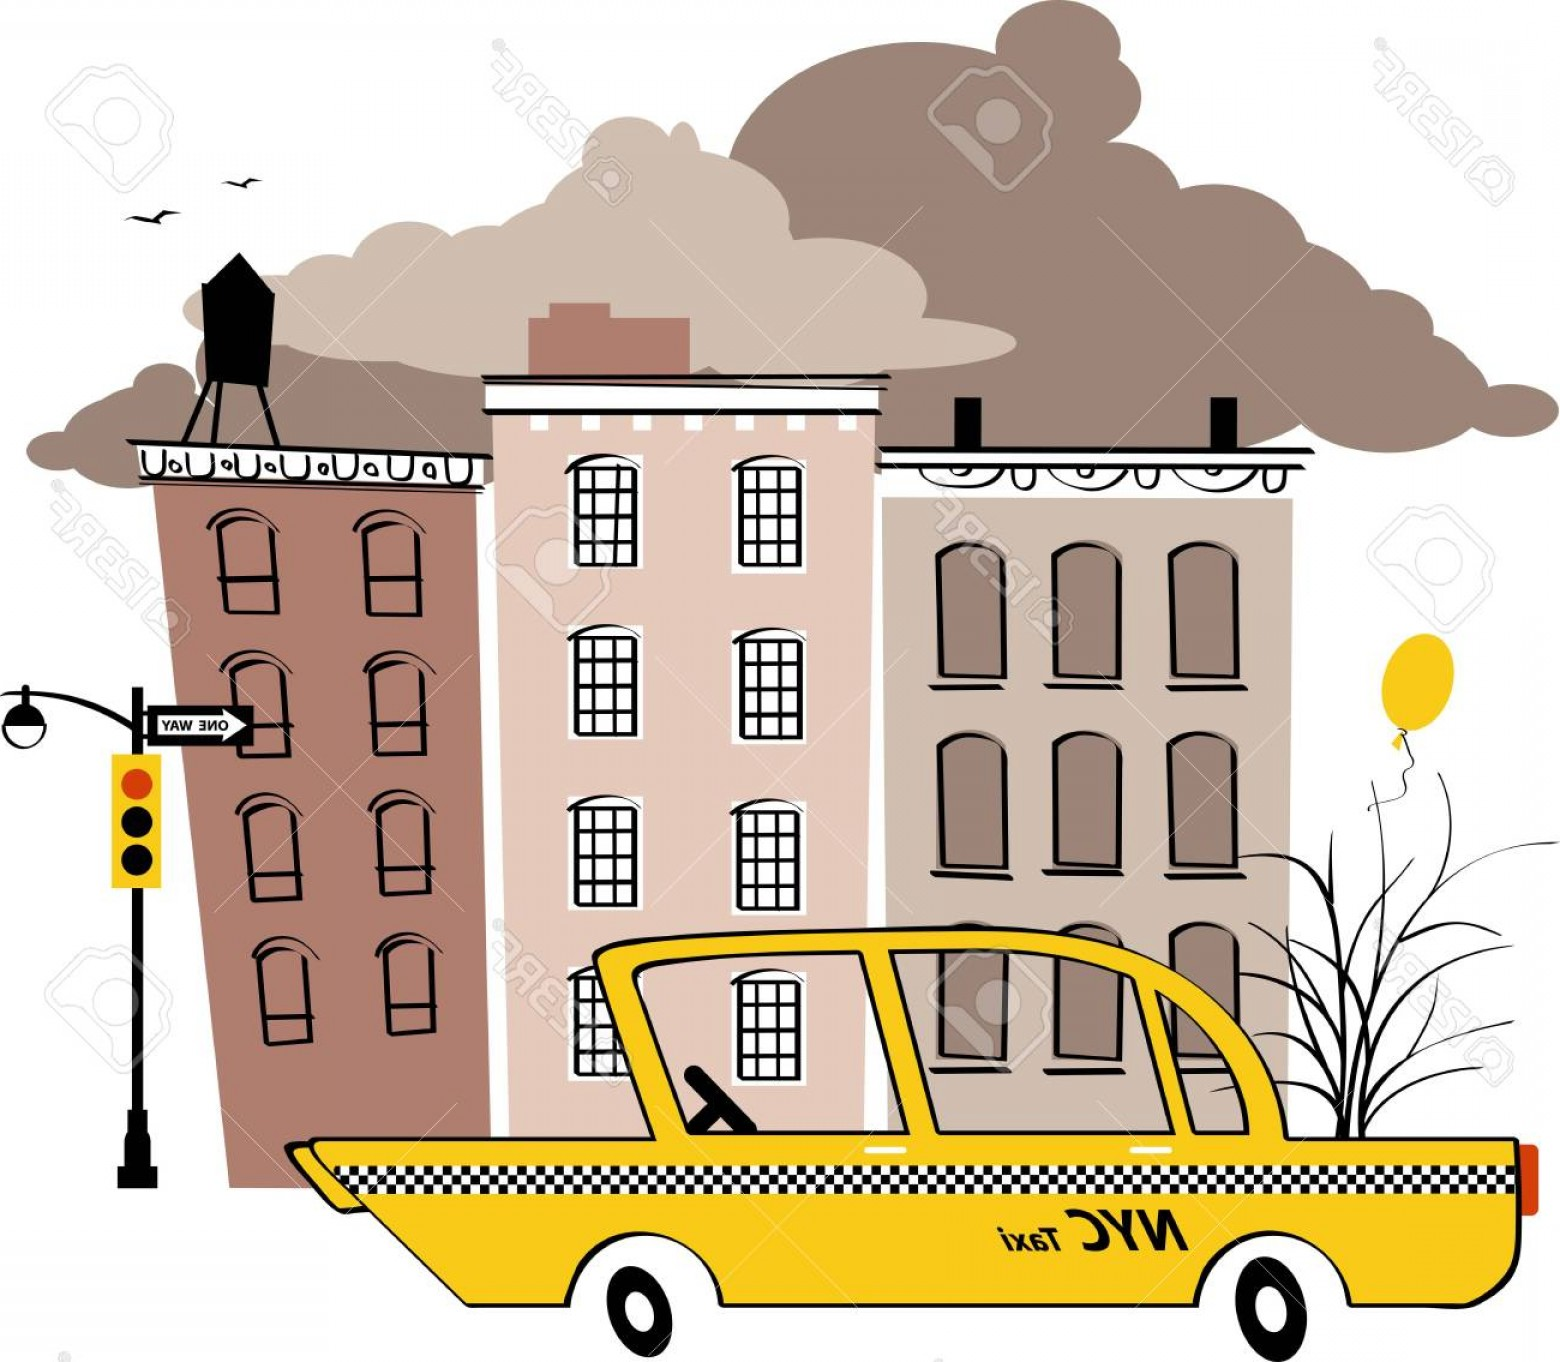 New York Taxi Cab Vector: Photostock Vector Yellow Taxi Cab In The Typical New York Street Vintage Inspired Vector Illustration